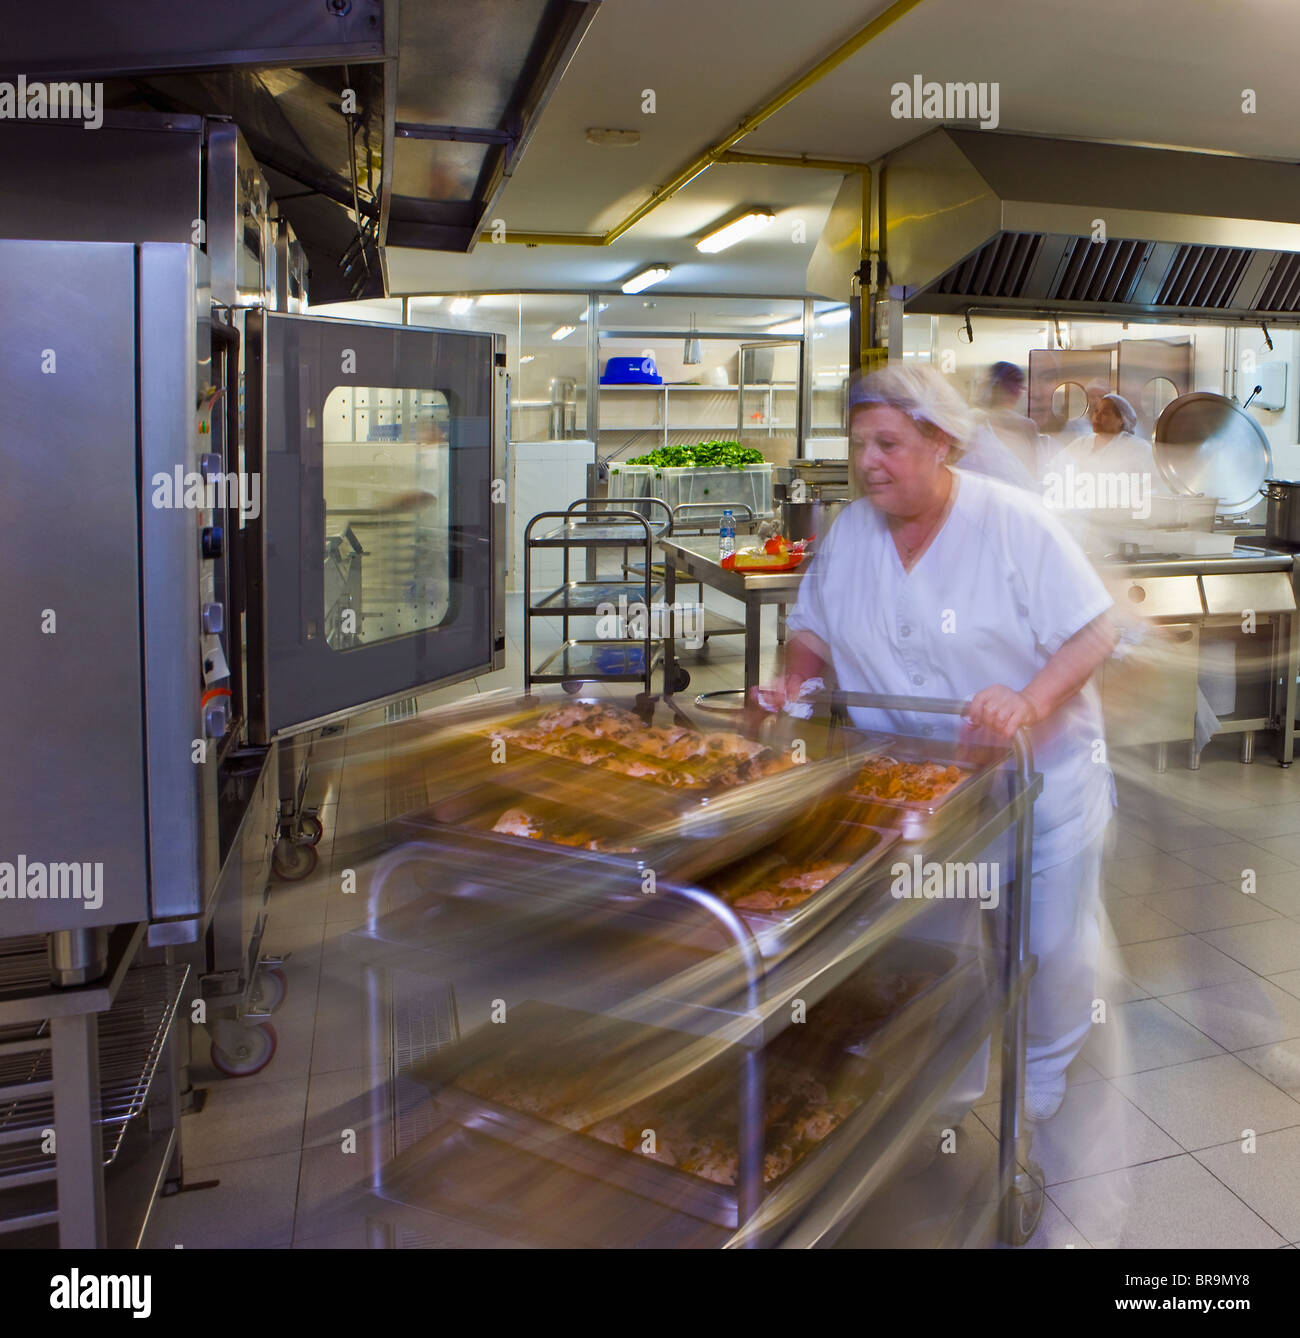 Kitchen porter pushes a trolley of pastries - Stock Image